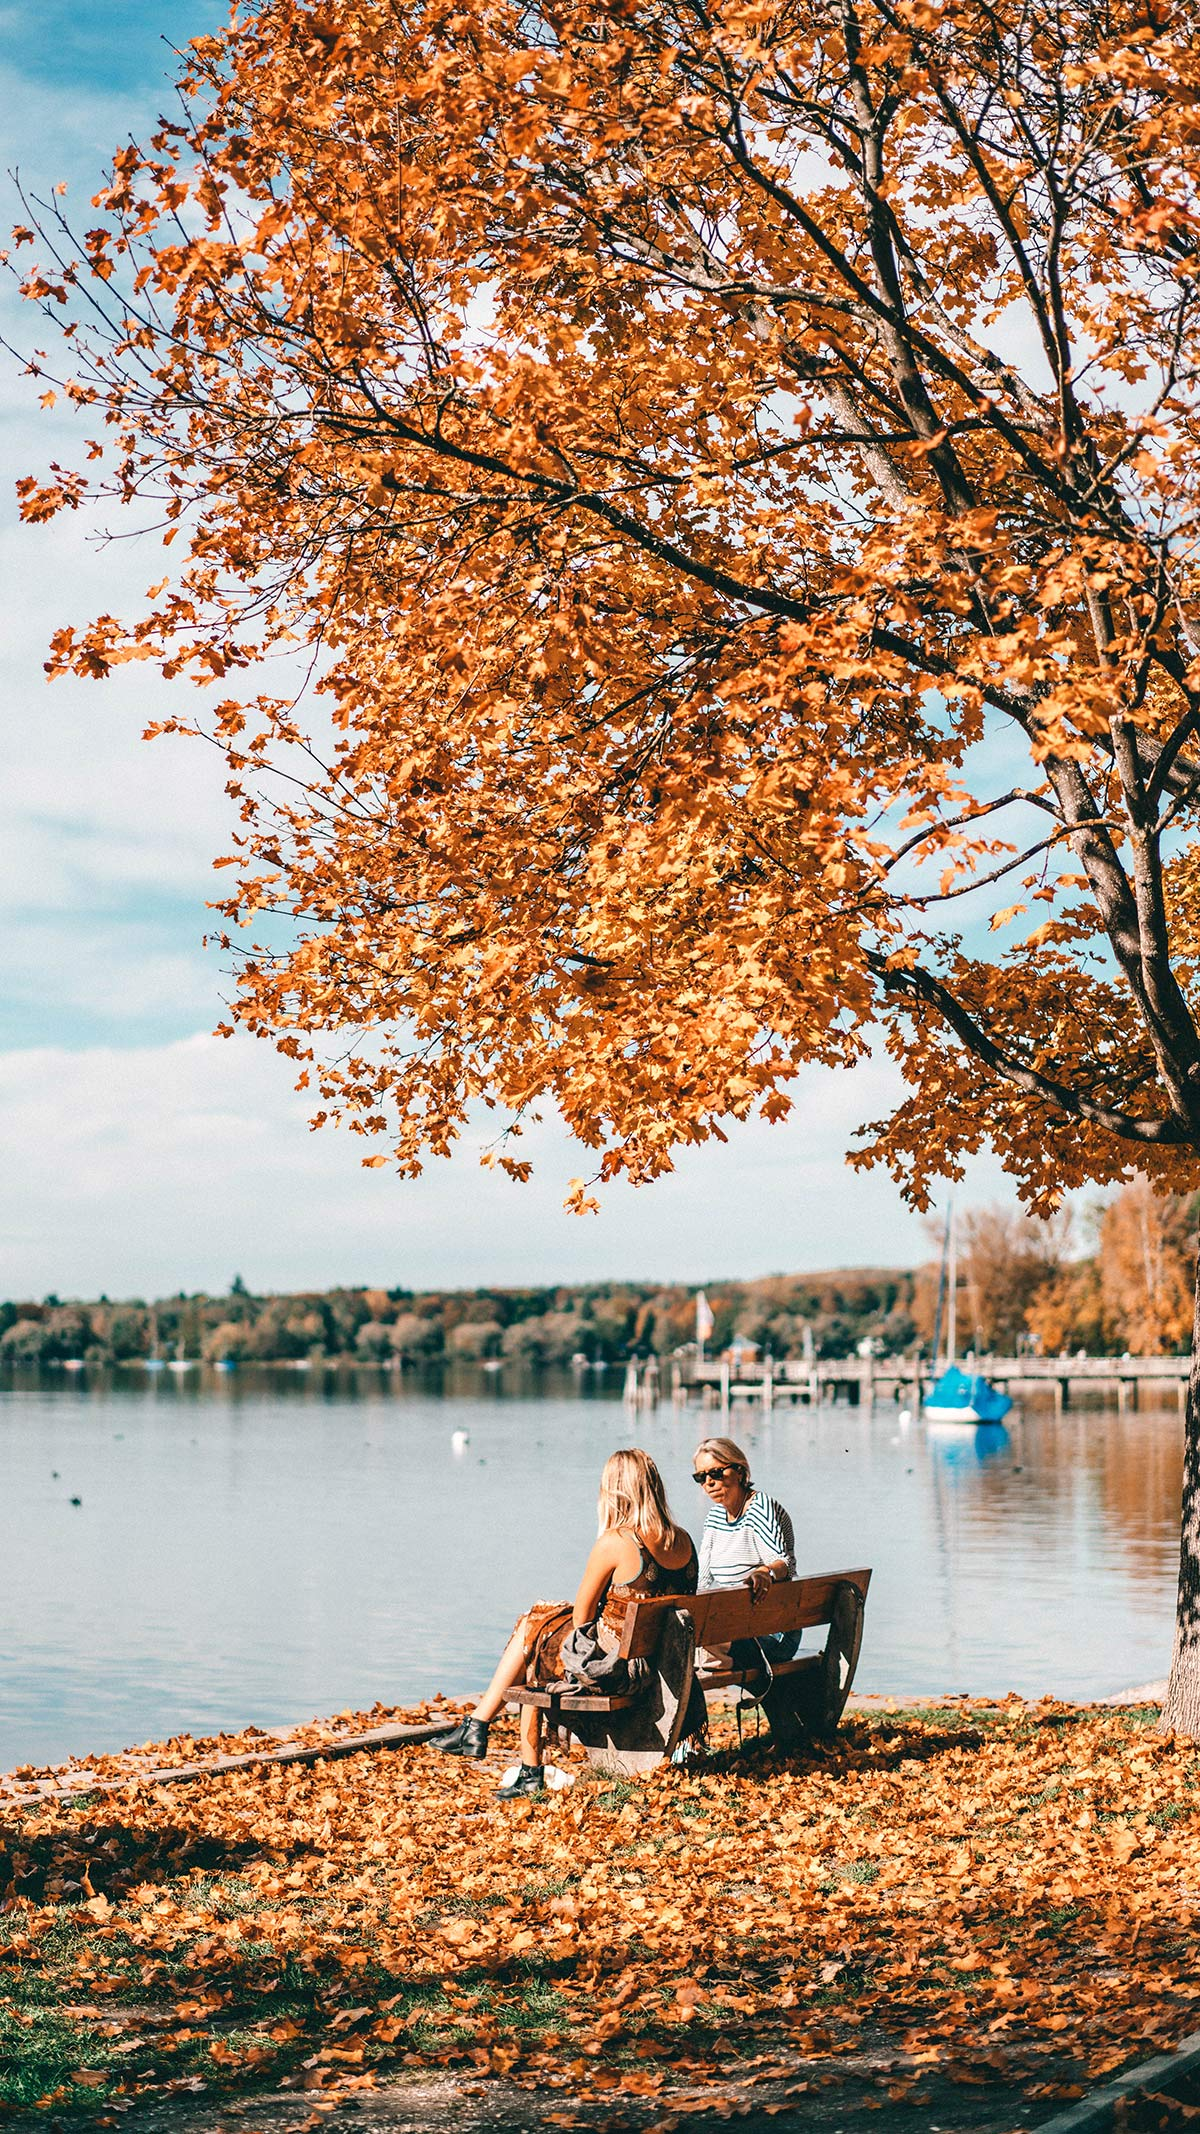 Ammersee Herbst